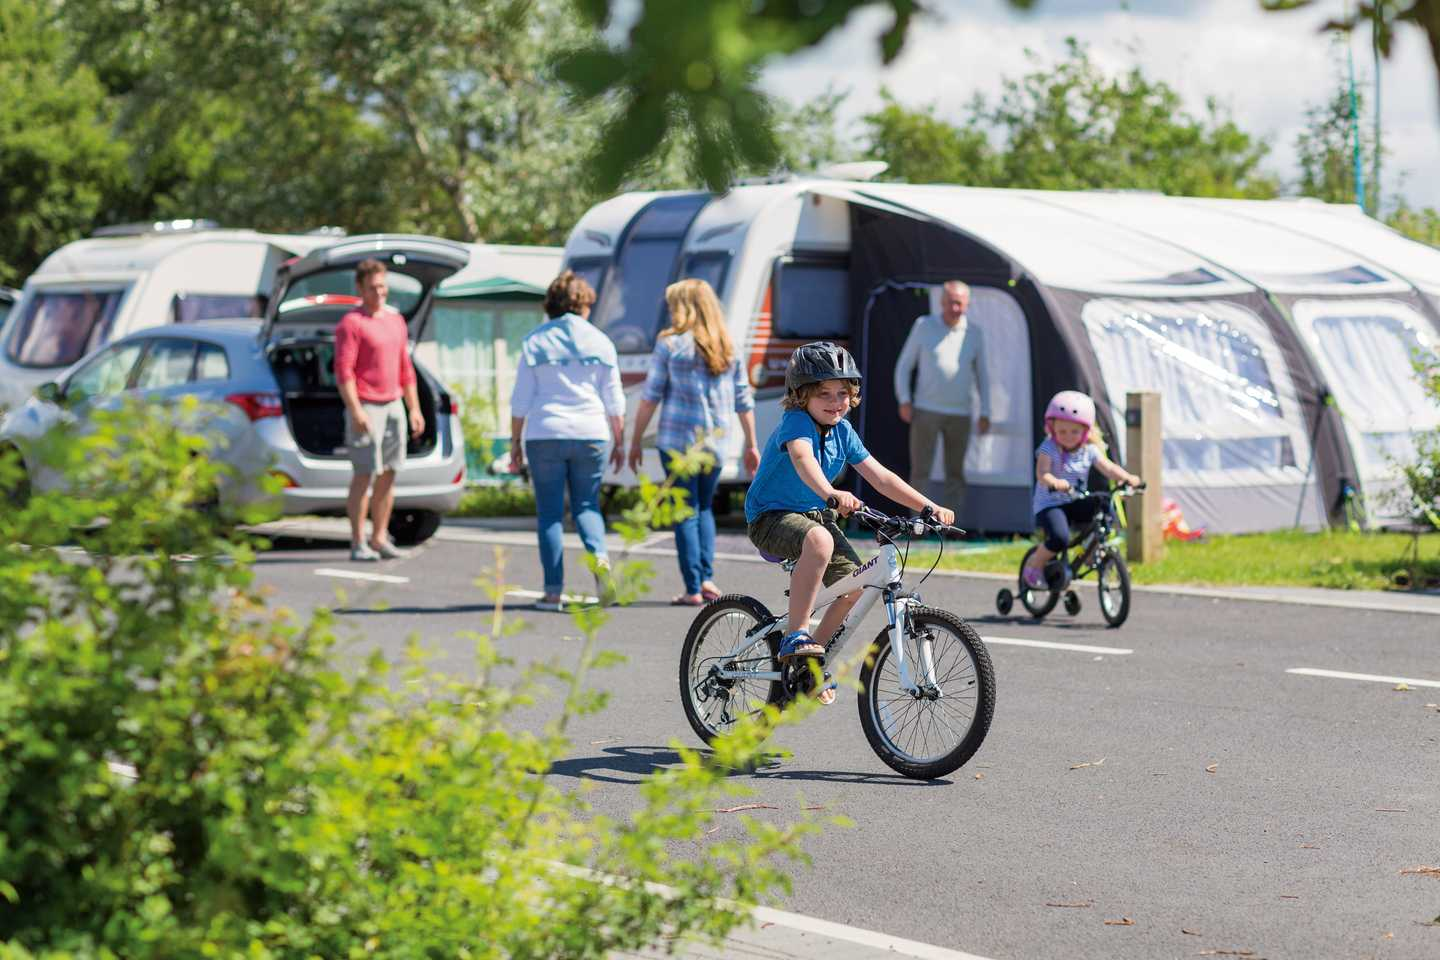 A child riding a bike in the touring area